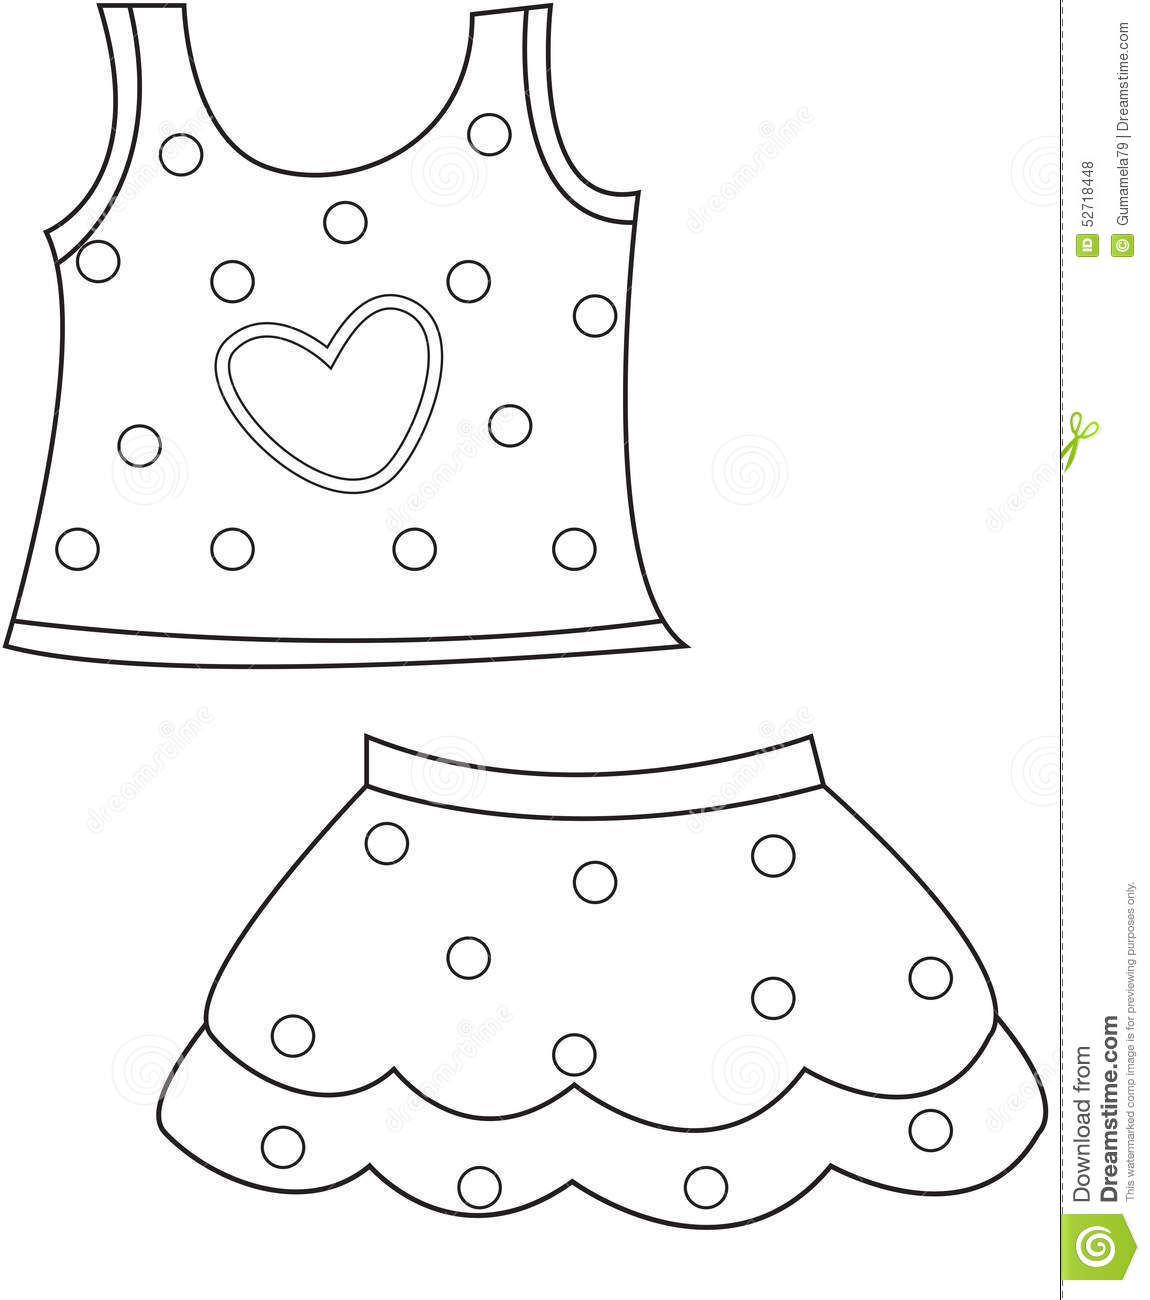 children u0027s clothing coloring page stock illustration image 52718448